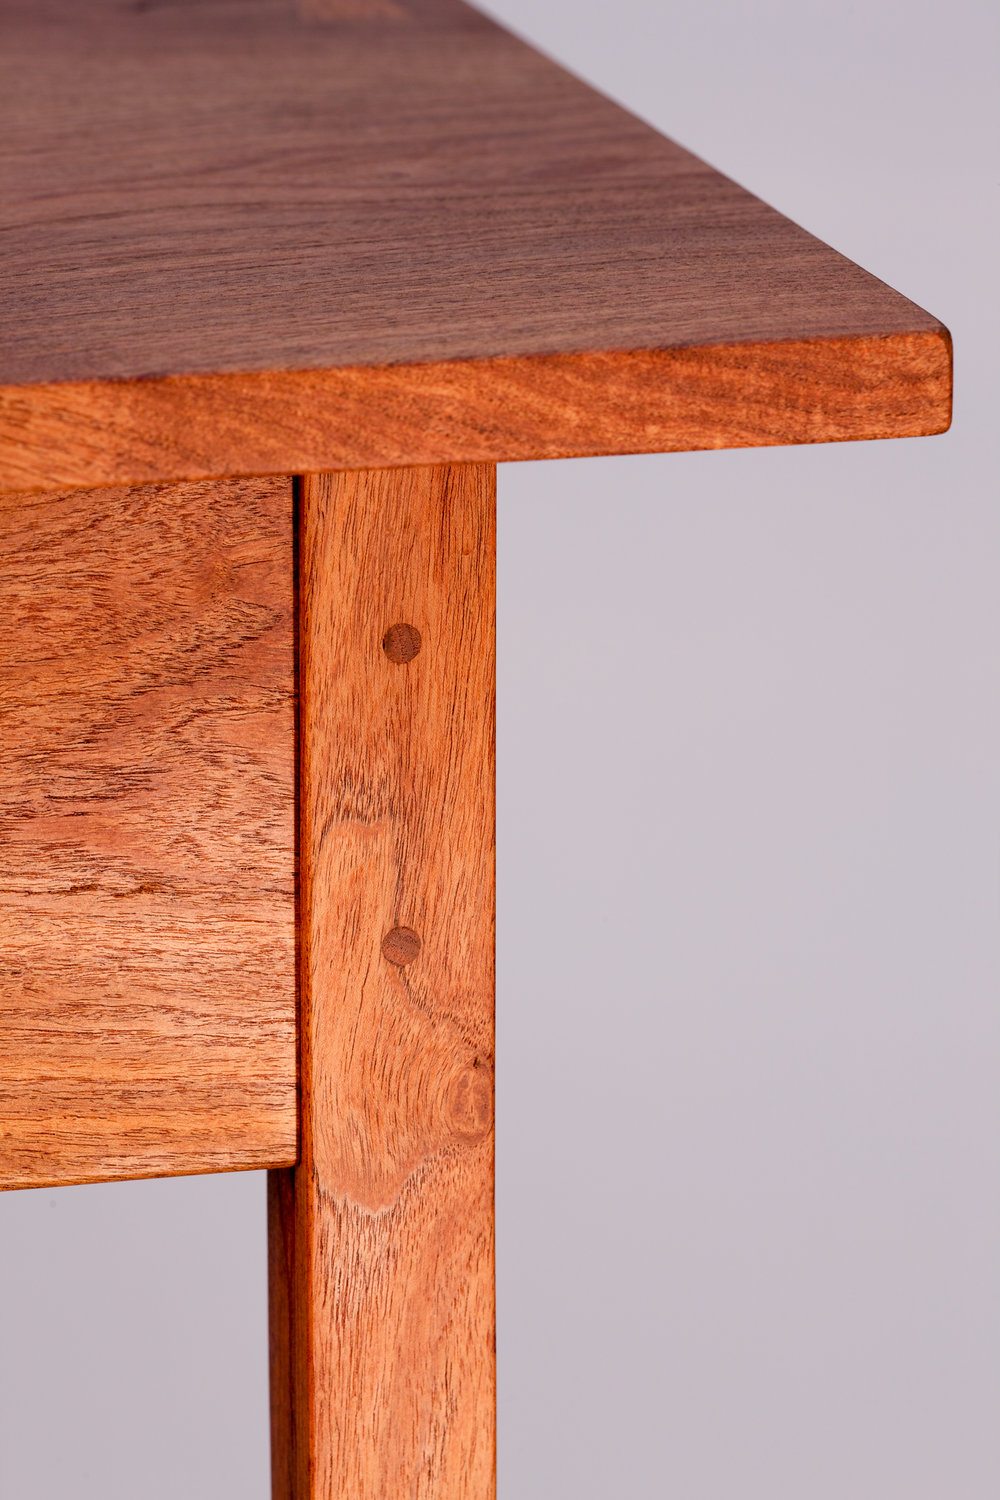 Pegged mortise and tenon detail